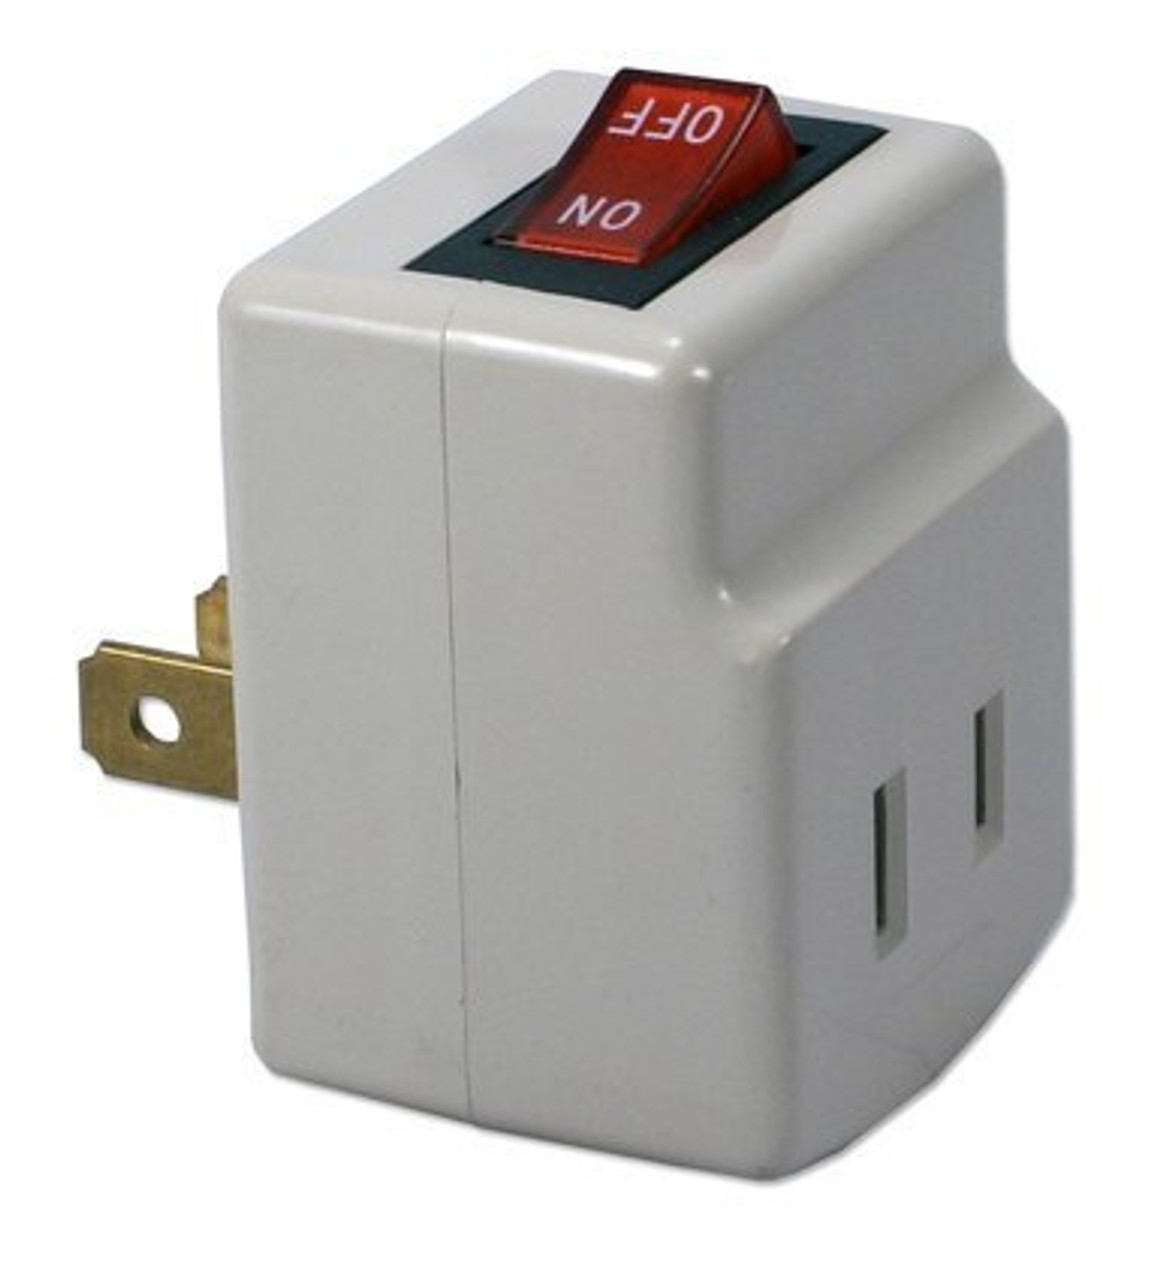 QVS PA-1P Single Port Power Adapter with Lighted On/Off Switch